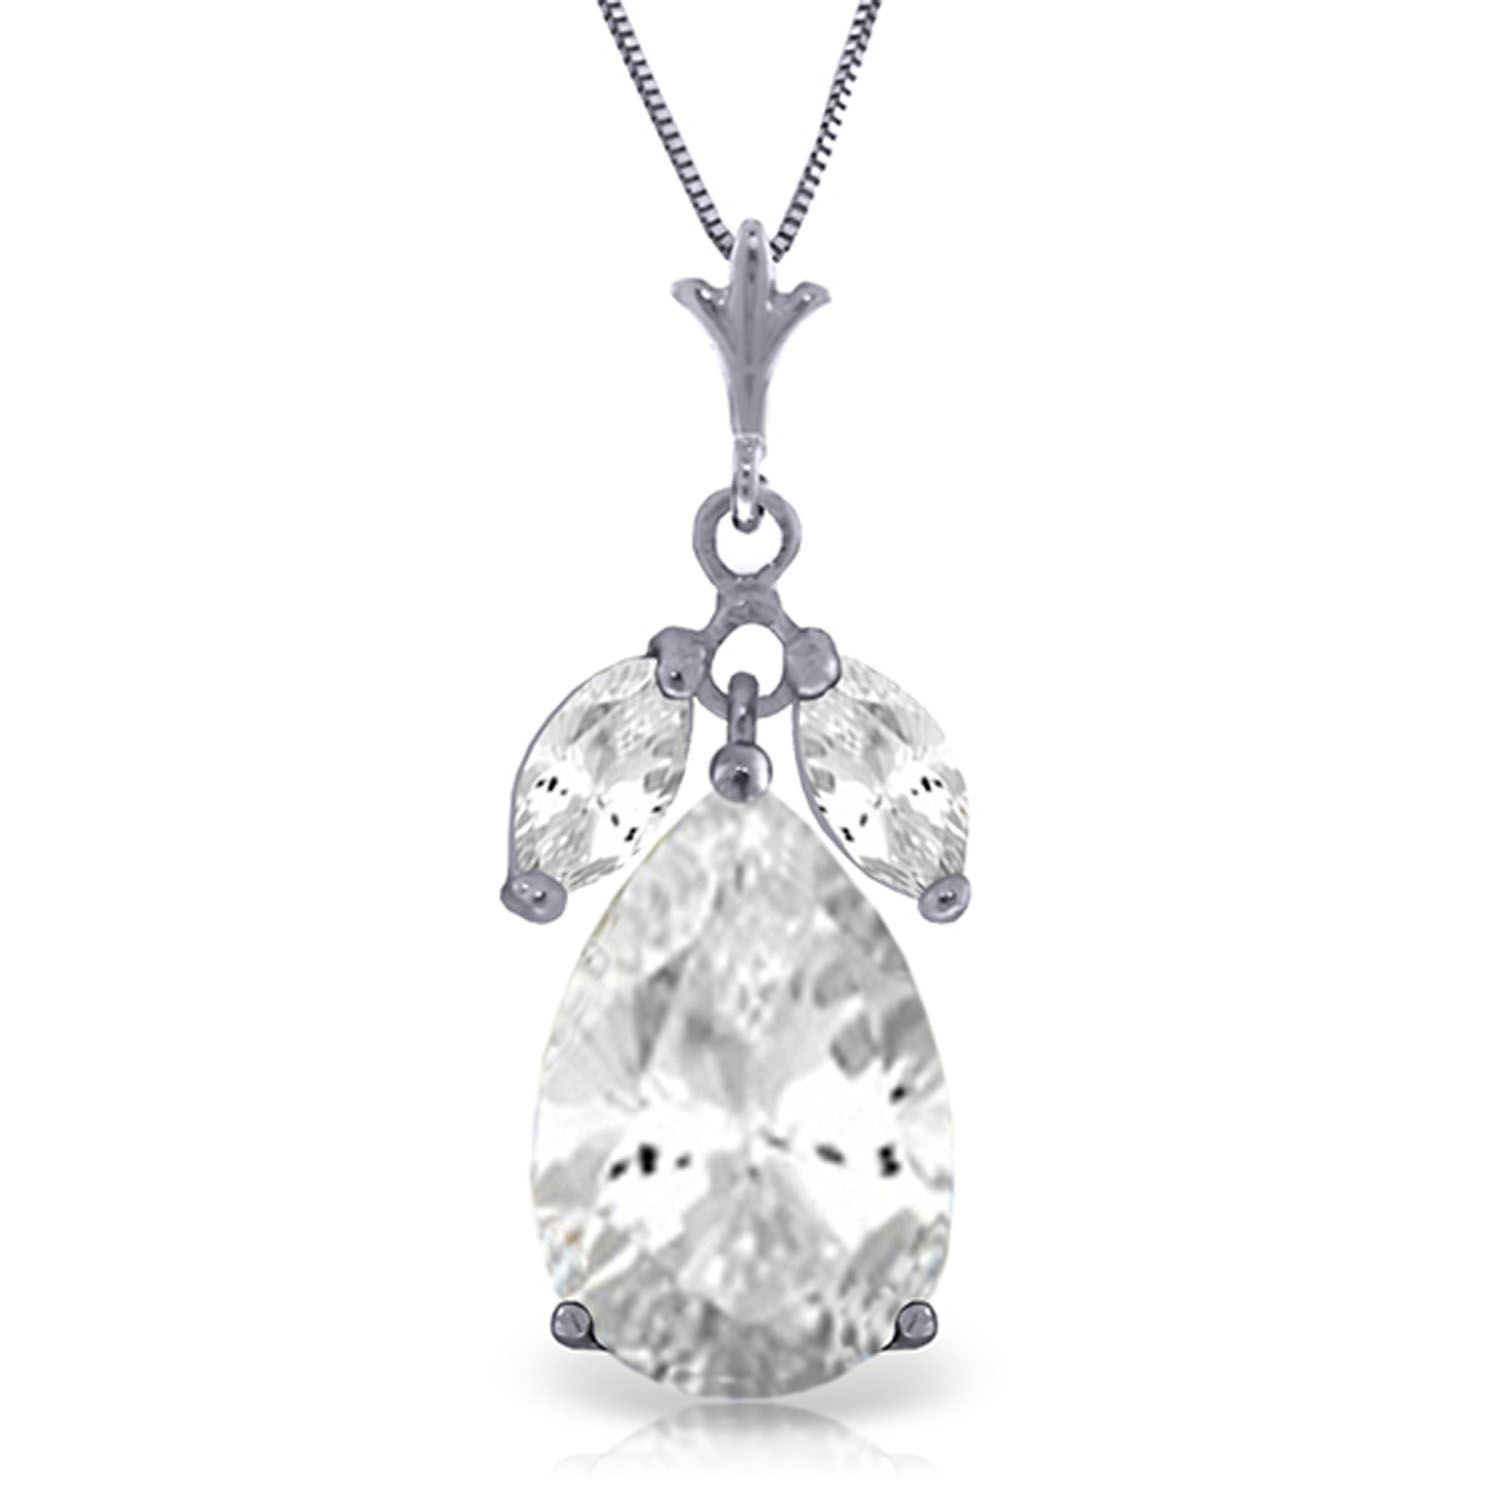 ALARRI 6.5 CTW 14K Solid White Gold Summer Twilight White Topaz Necklace with 24 Inch Chain Length